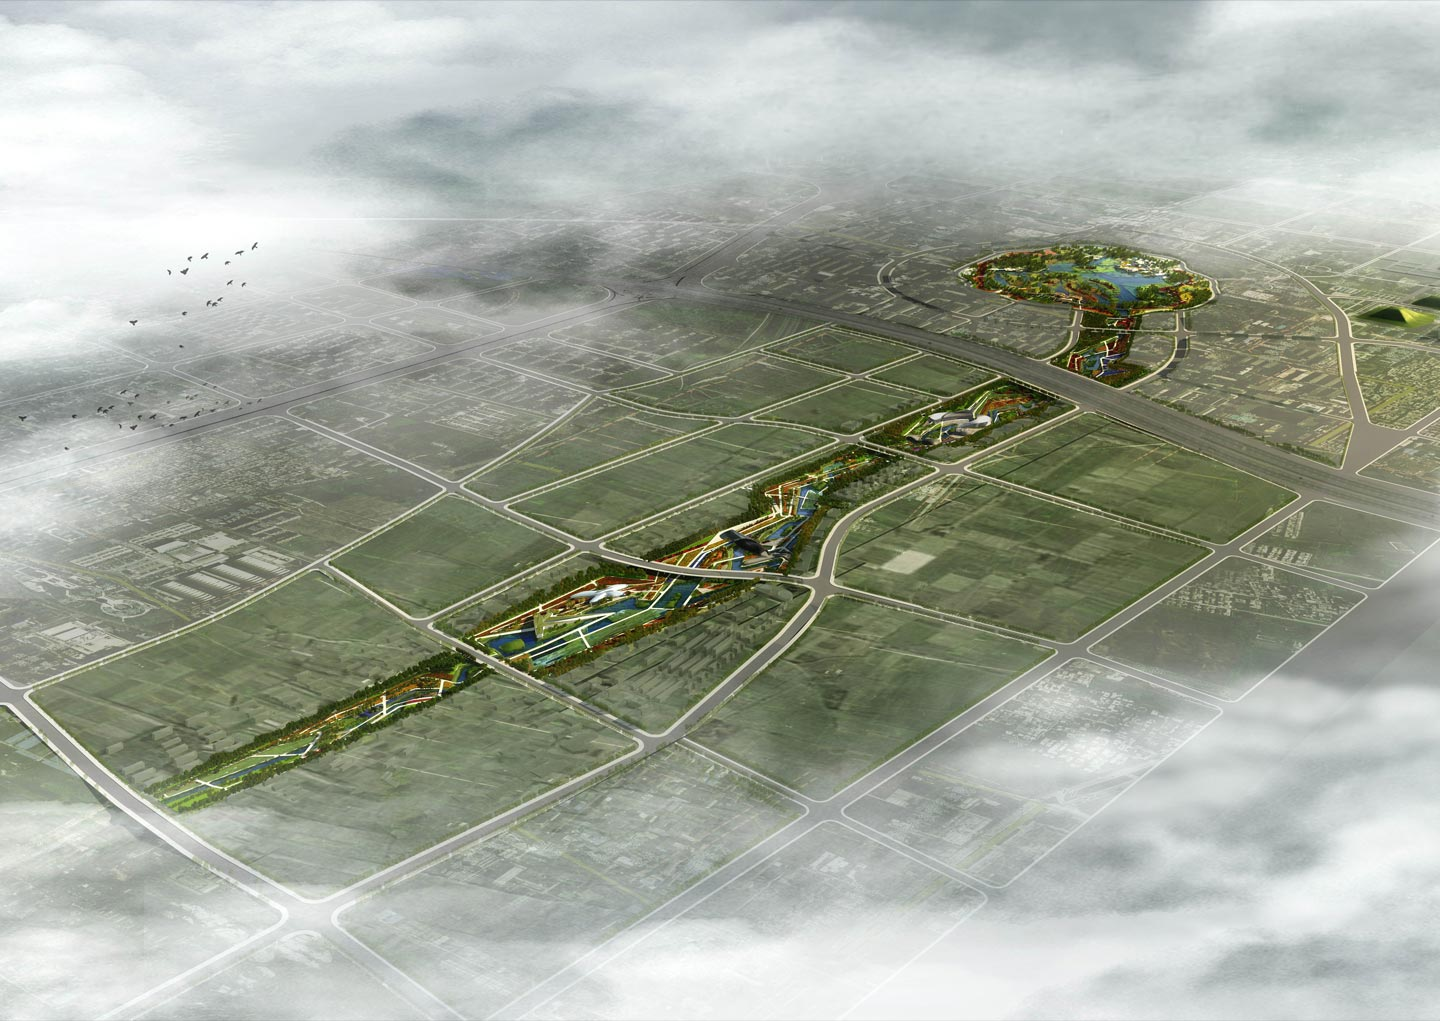 waa QuJiang Wetland Landscape Competition Top View 西安曲江创意谷湿地公园中标俯视图